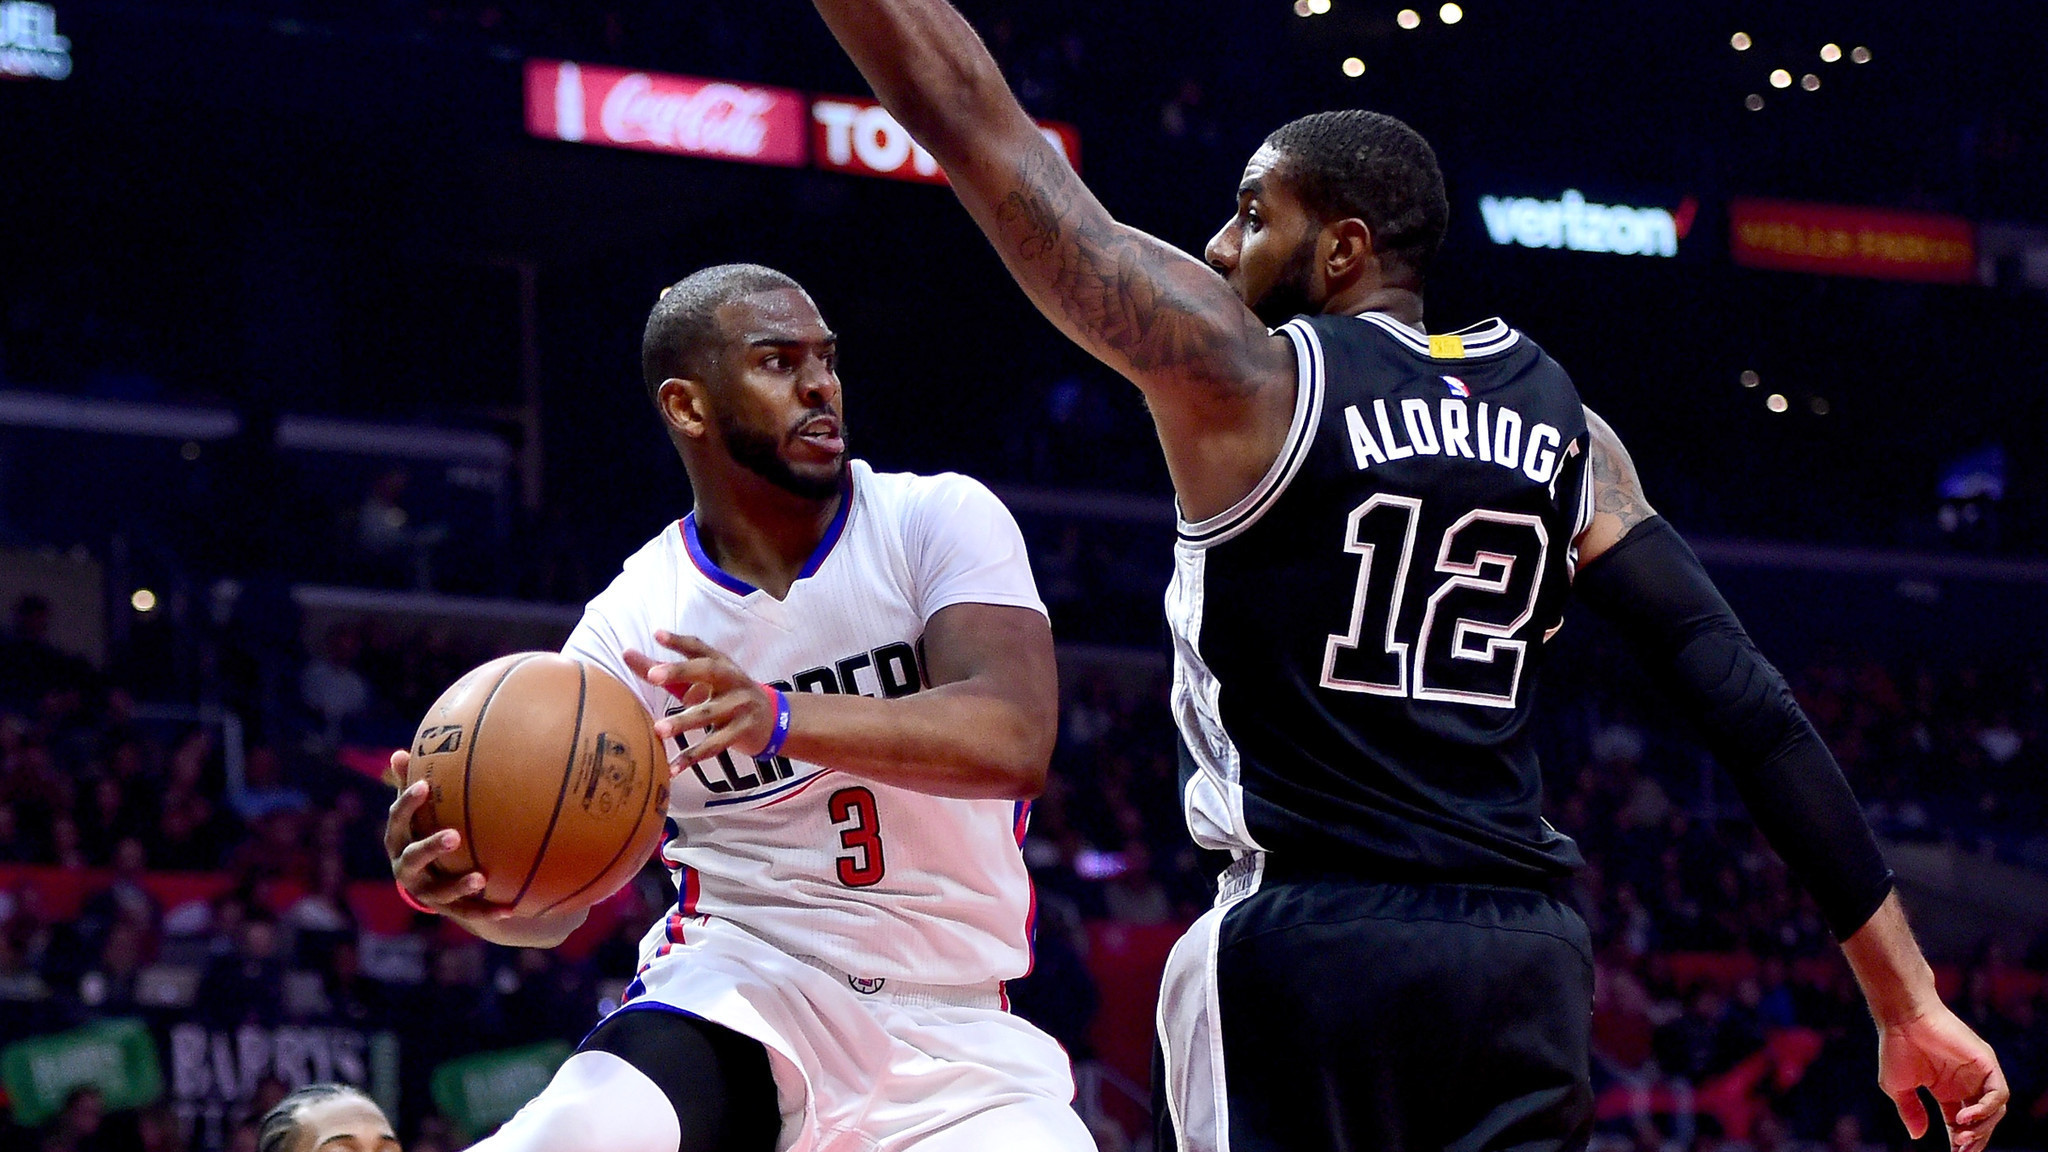 La-sp-clippers-notebook-20170226